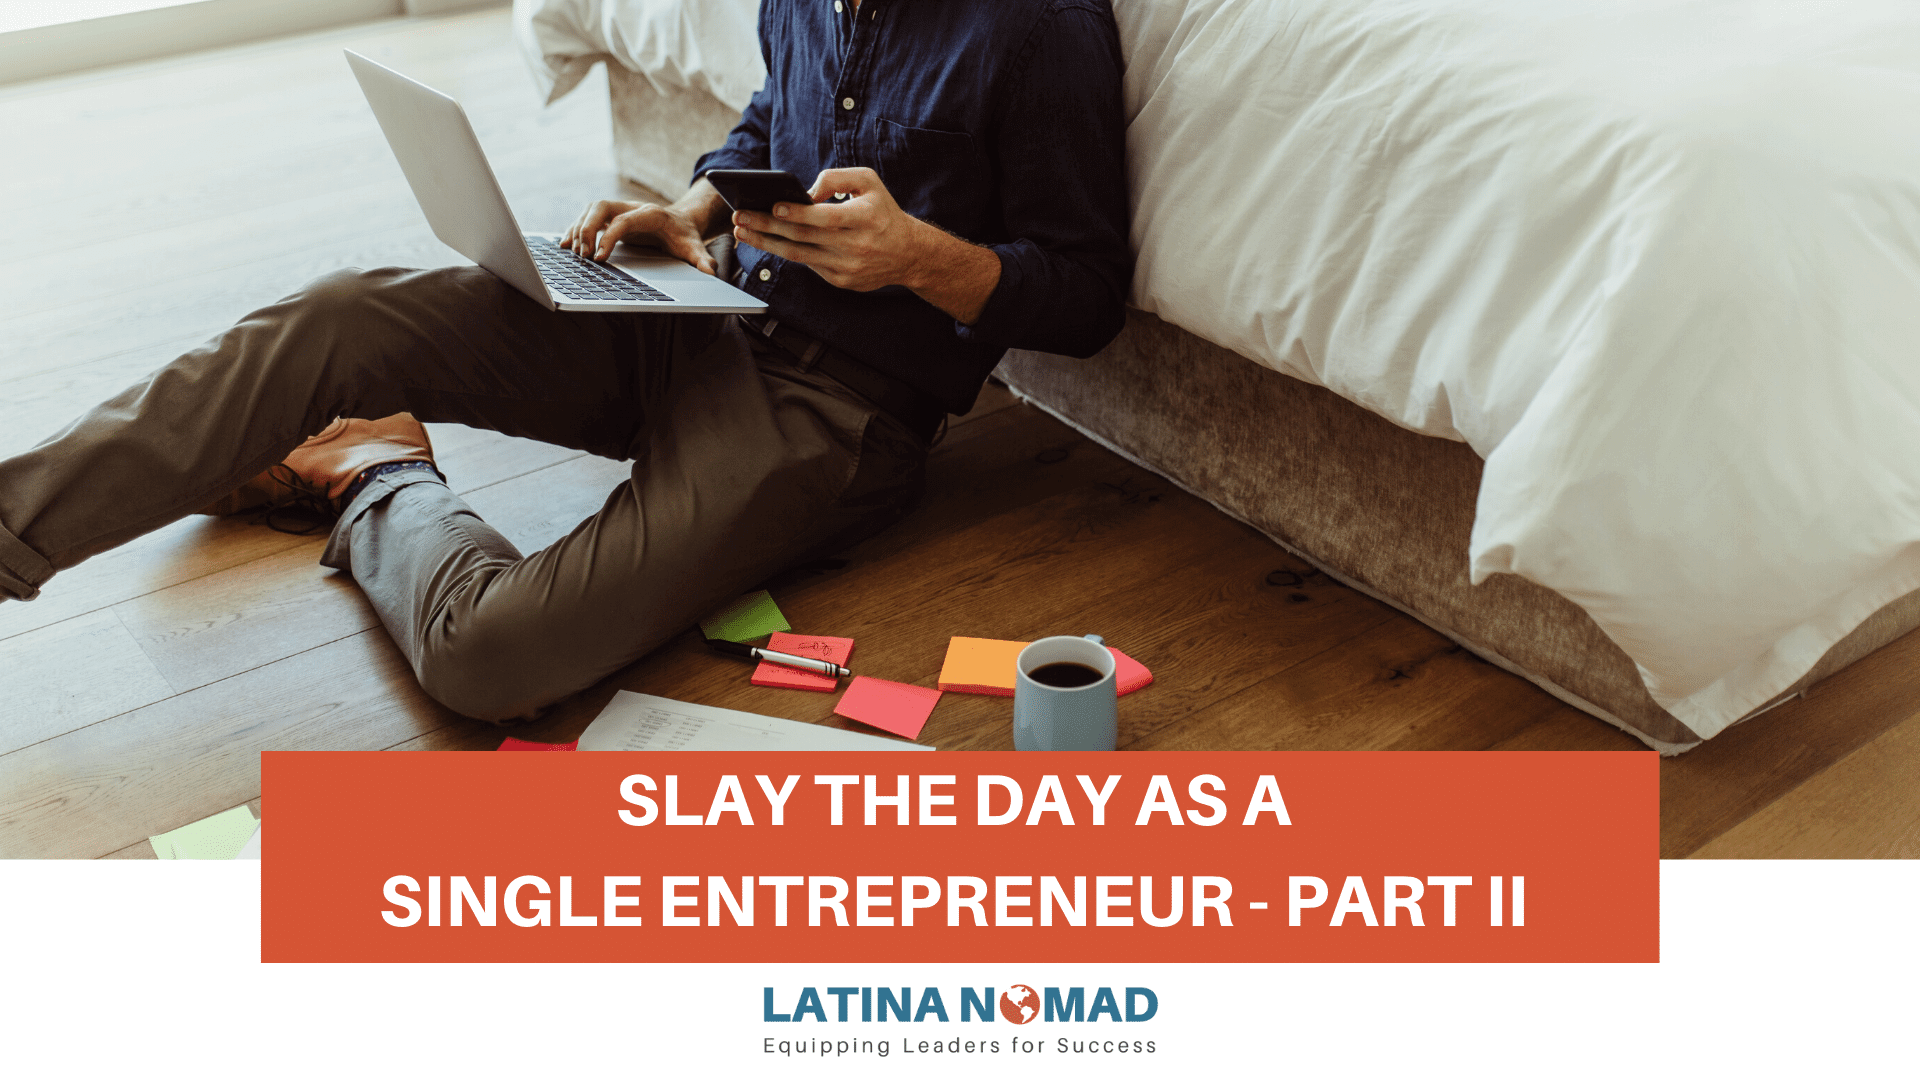 Slay the Day as a SIngle Entrepreneur